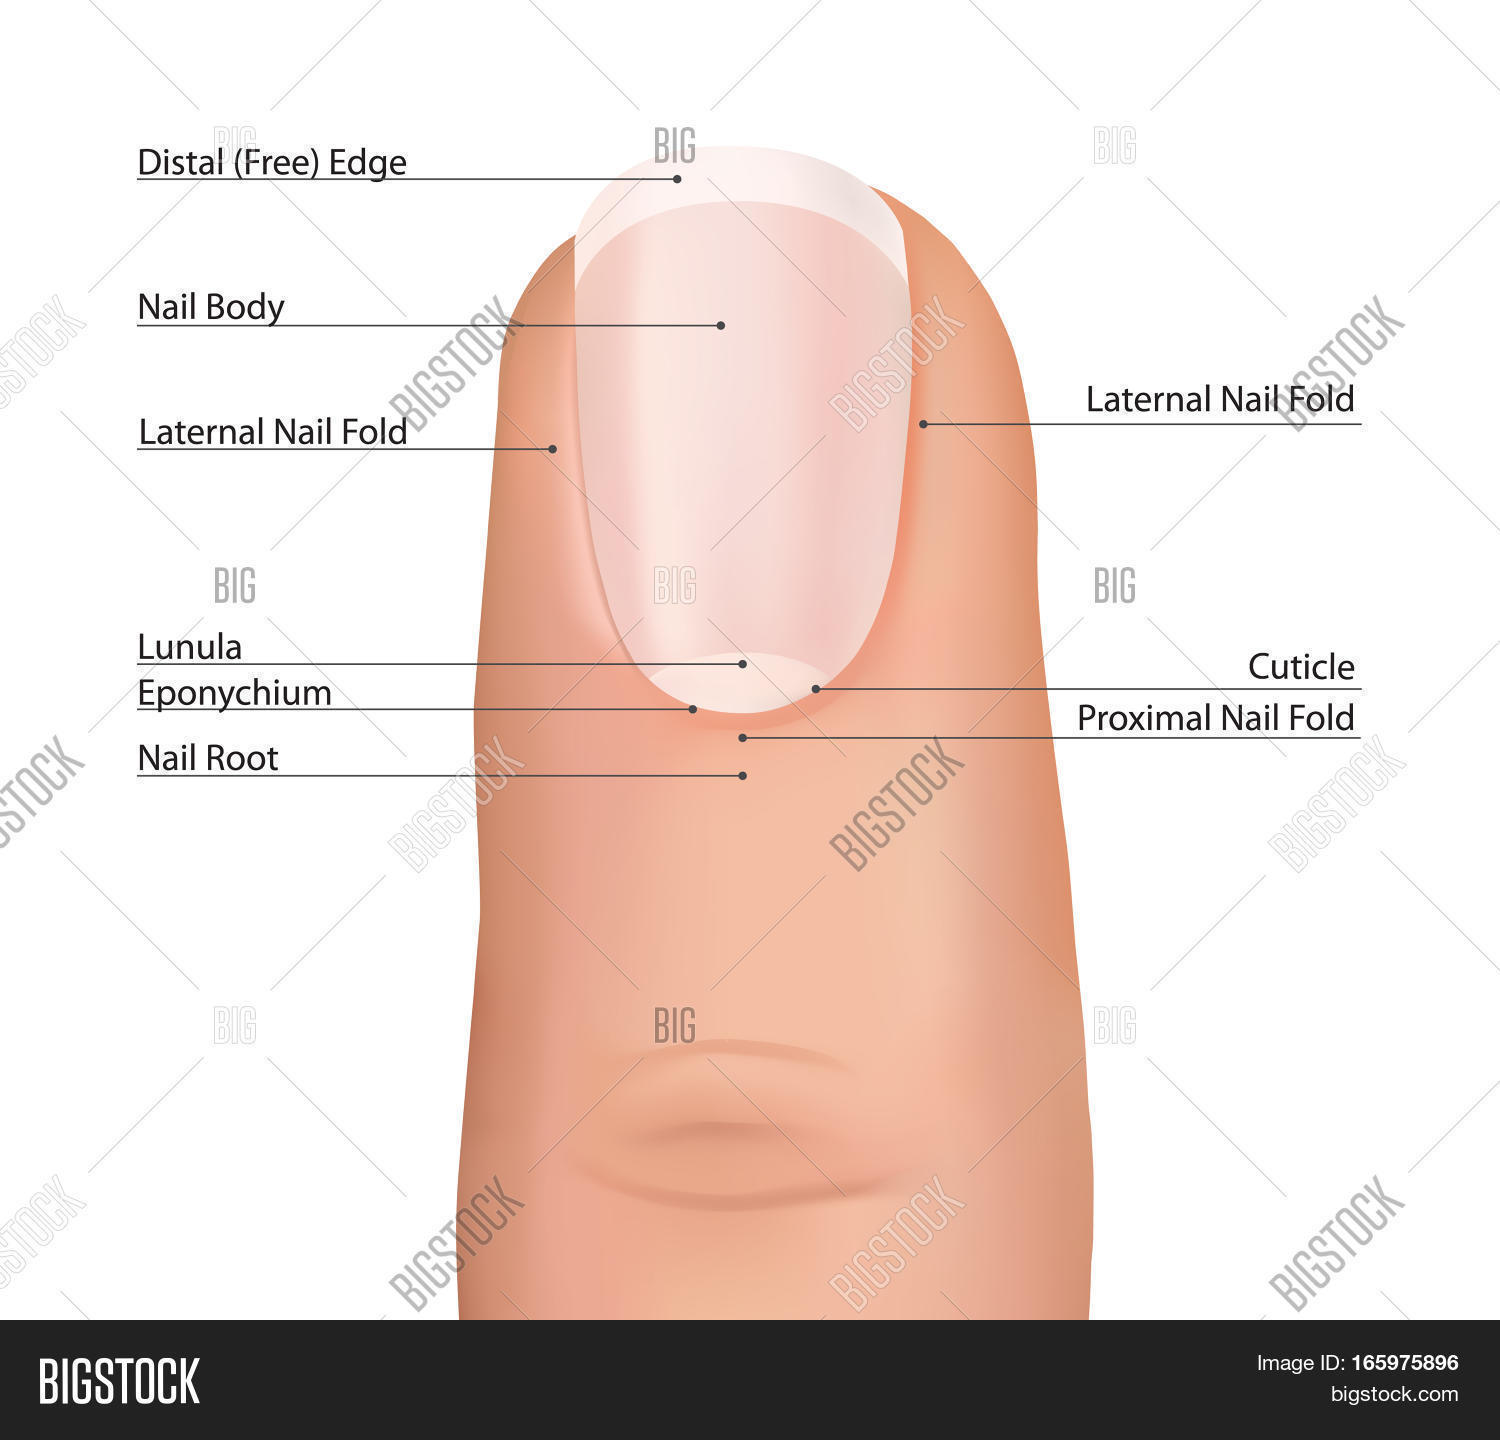 Nail Finger Anatomy Image Photo Free Trial Bigstock